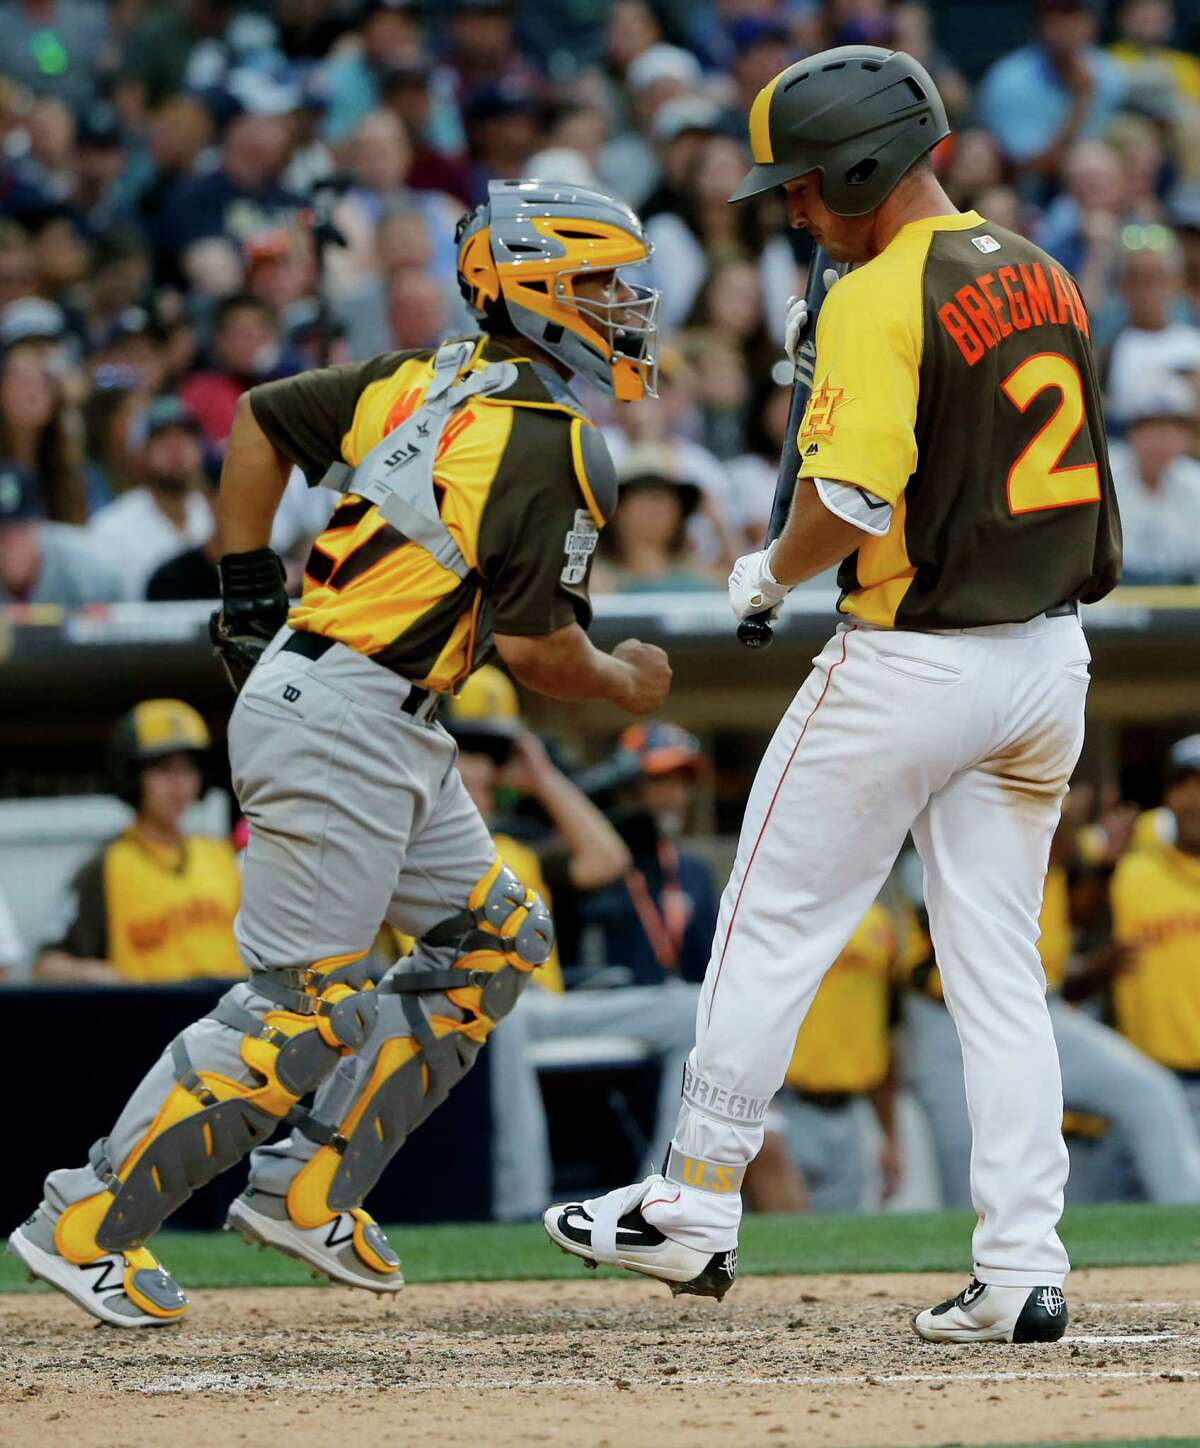 U.S. Team Alex Bregman, of the Houston Astros, strikes out to end the game as catcher Francisco Mejia, of the Cleveland Indians, celebrates after the All-Star Futures baseball game, Sunday, July 10, 2016, in San Diego. (AP Photo/Lenny Ignelzi)